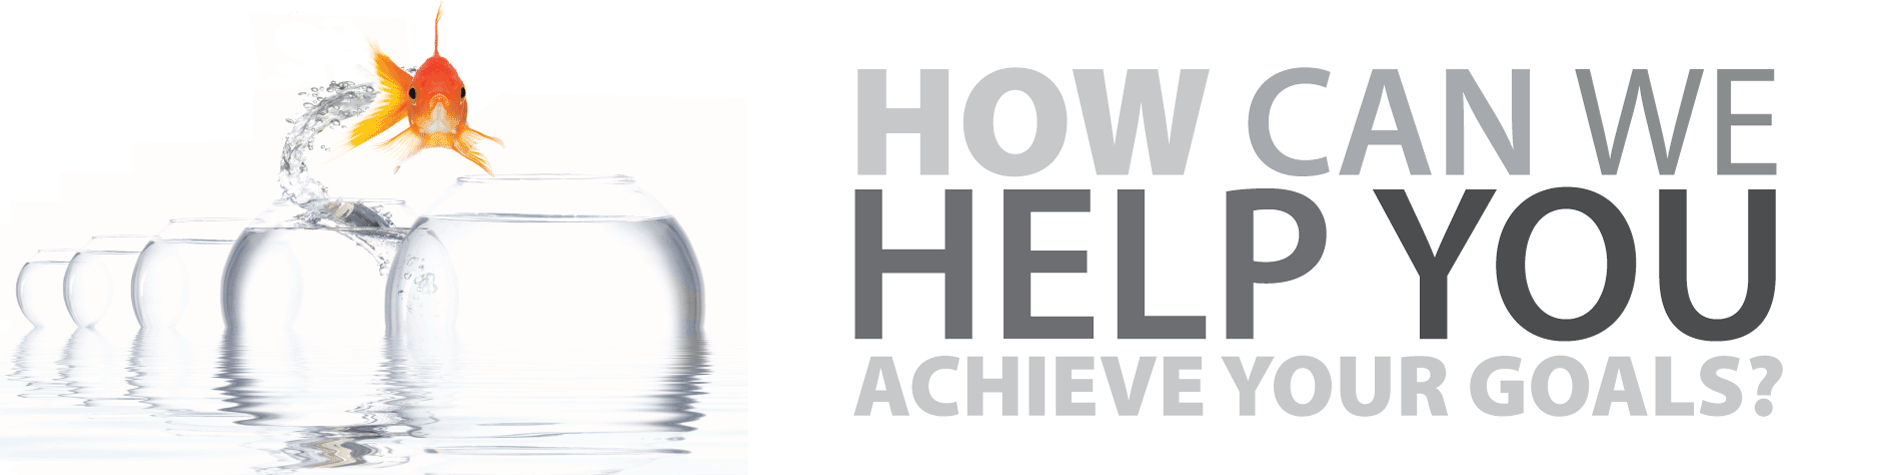 How can we help you achieve your goals?